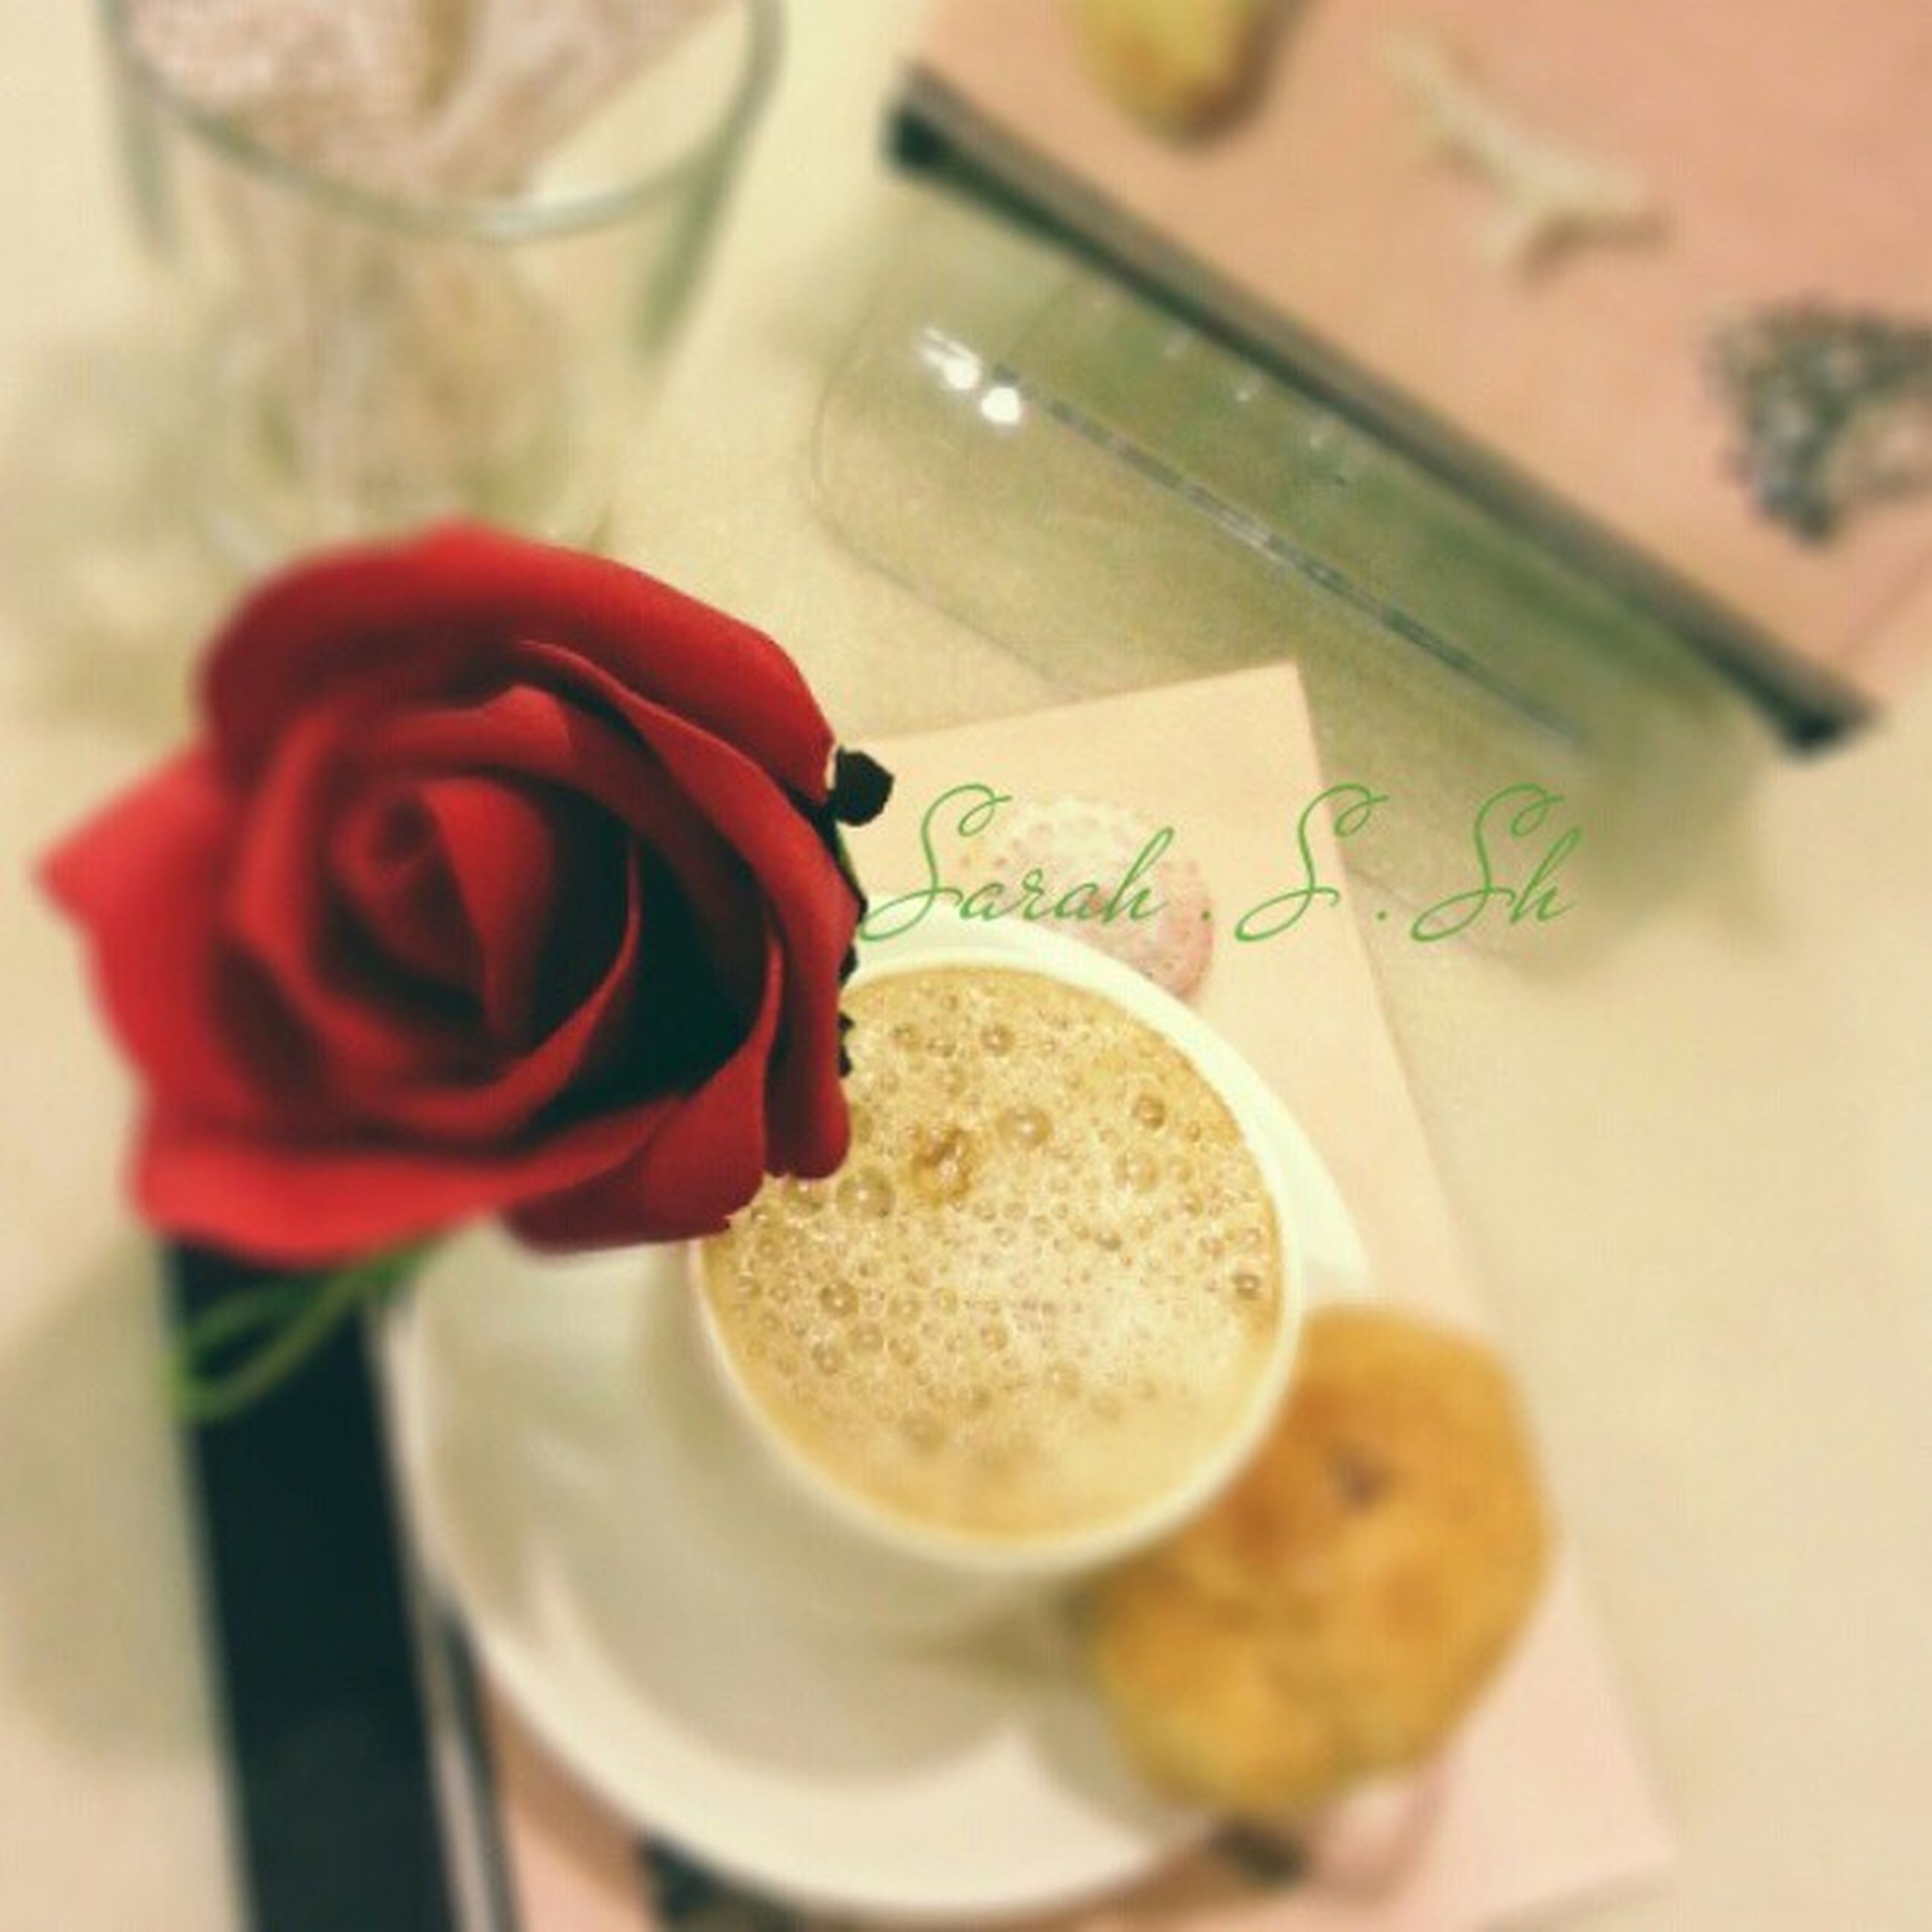 indoors, food and drink, freshness, table, still life, text, close-up, western script, communication, coffee cup, drink, food, flower, selective focus, sweet food, refreshment, focus on foreground, high angle view, coffee - drink, red